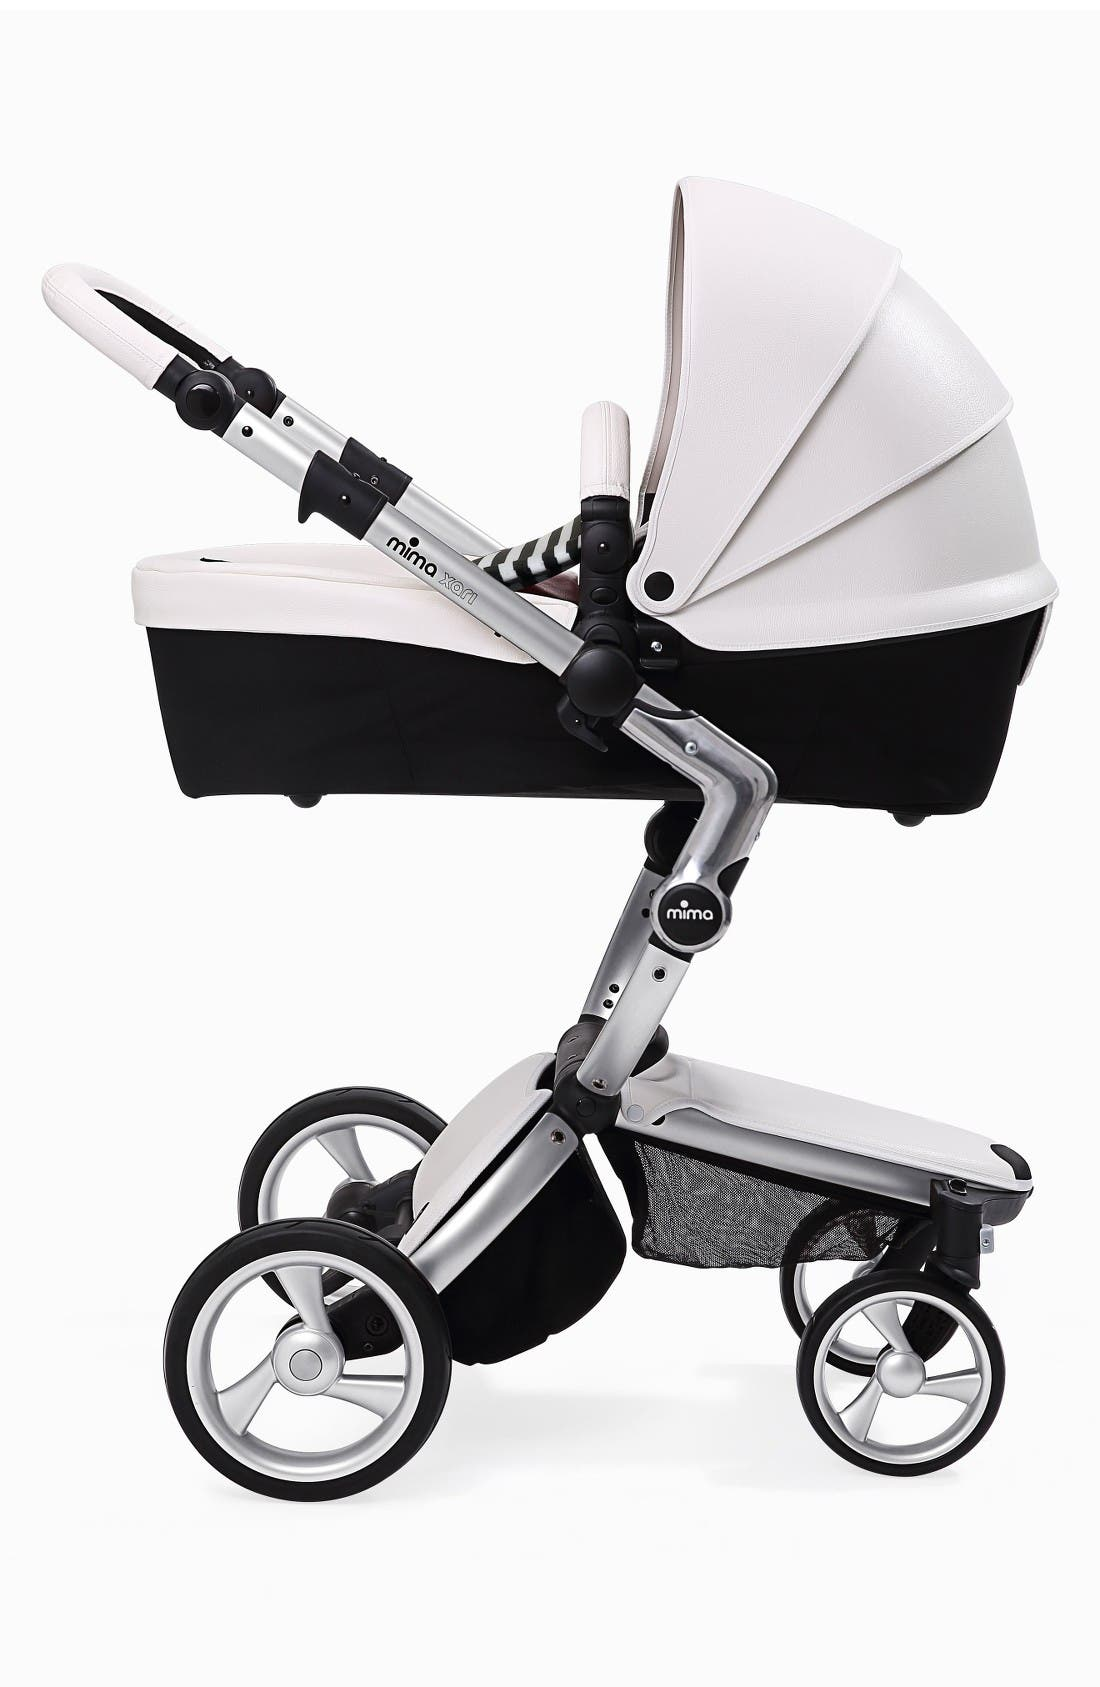 Xari Aluminum Chassis Stroller with Reversible Reclining Seat & Carrycot,                             Alternate thumbnail 6, color,                             Black / Black And White